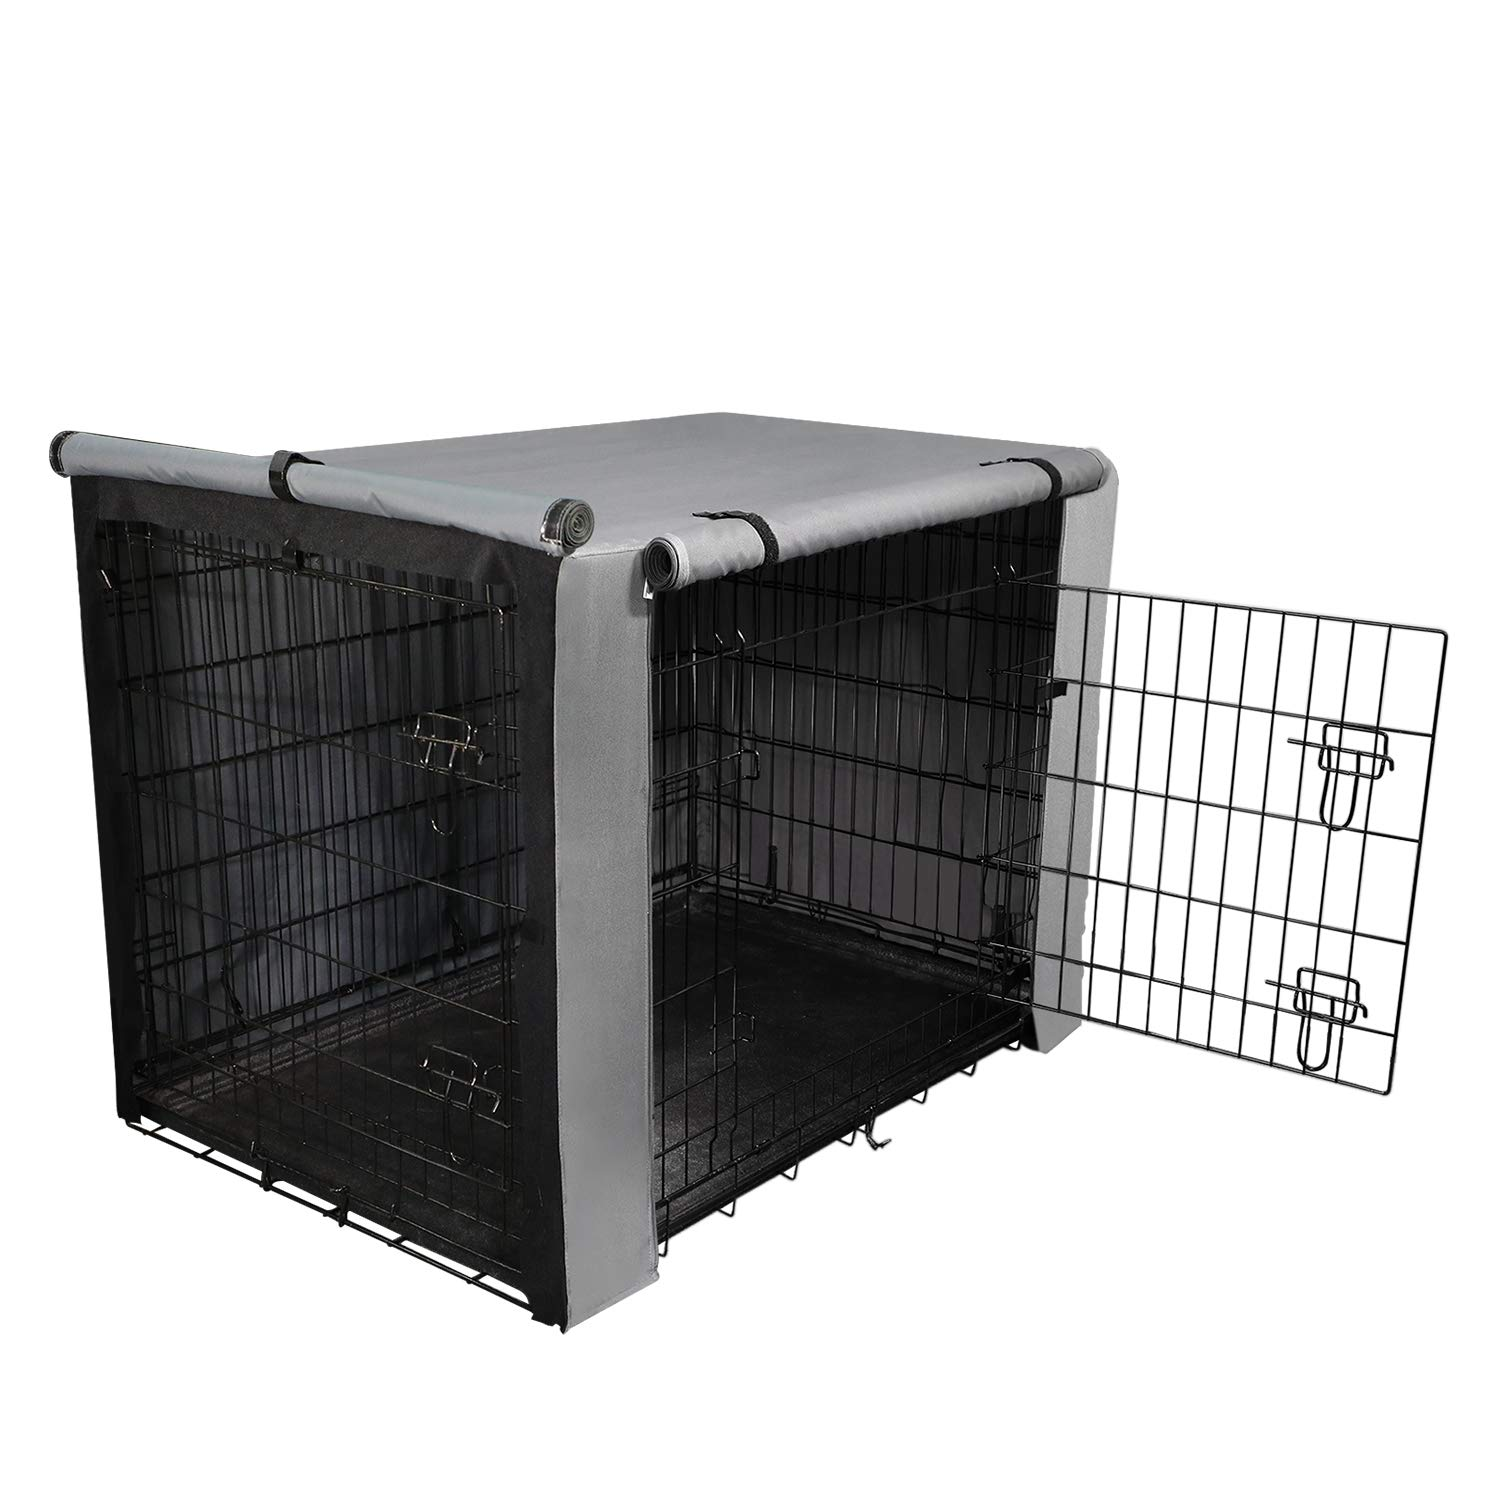 yotache Dog Crate Cover for 36'' Medium Double Door Wire Dog Cage, Lightweight 600D Polyester Indoor/Outdoor Durable Waterproof & Windproof Pet Kennel Covers, Gray by yotache